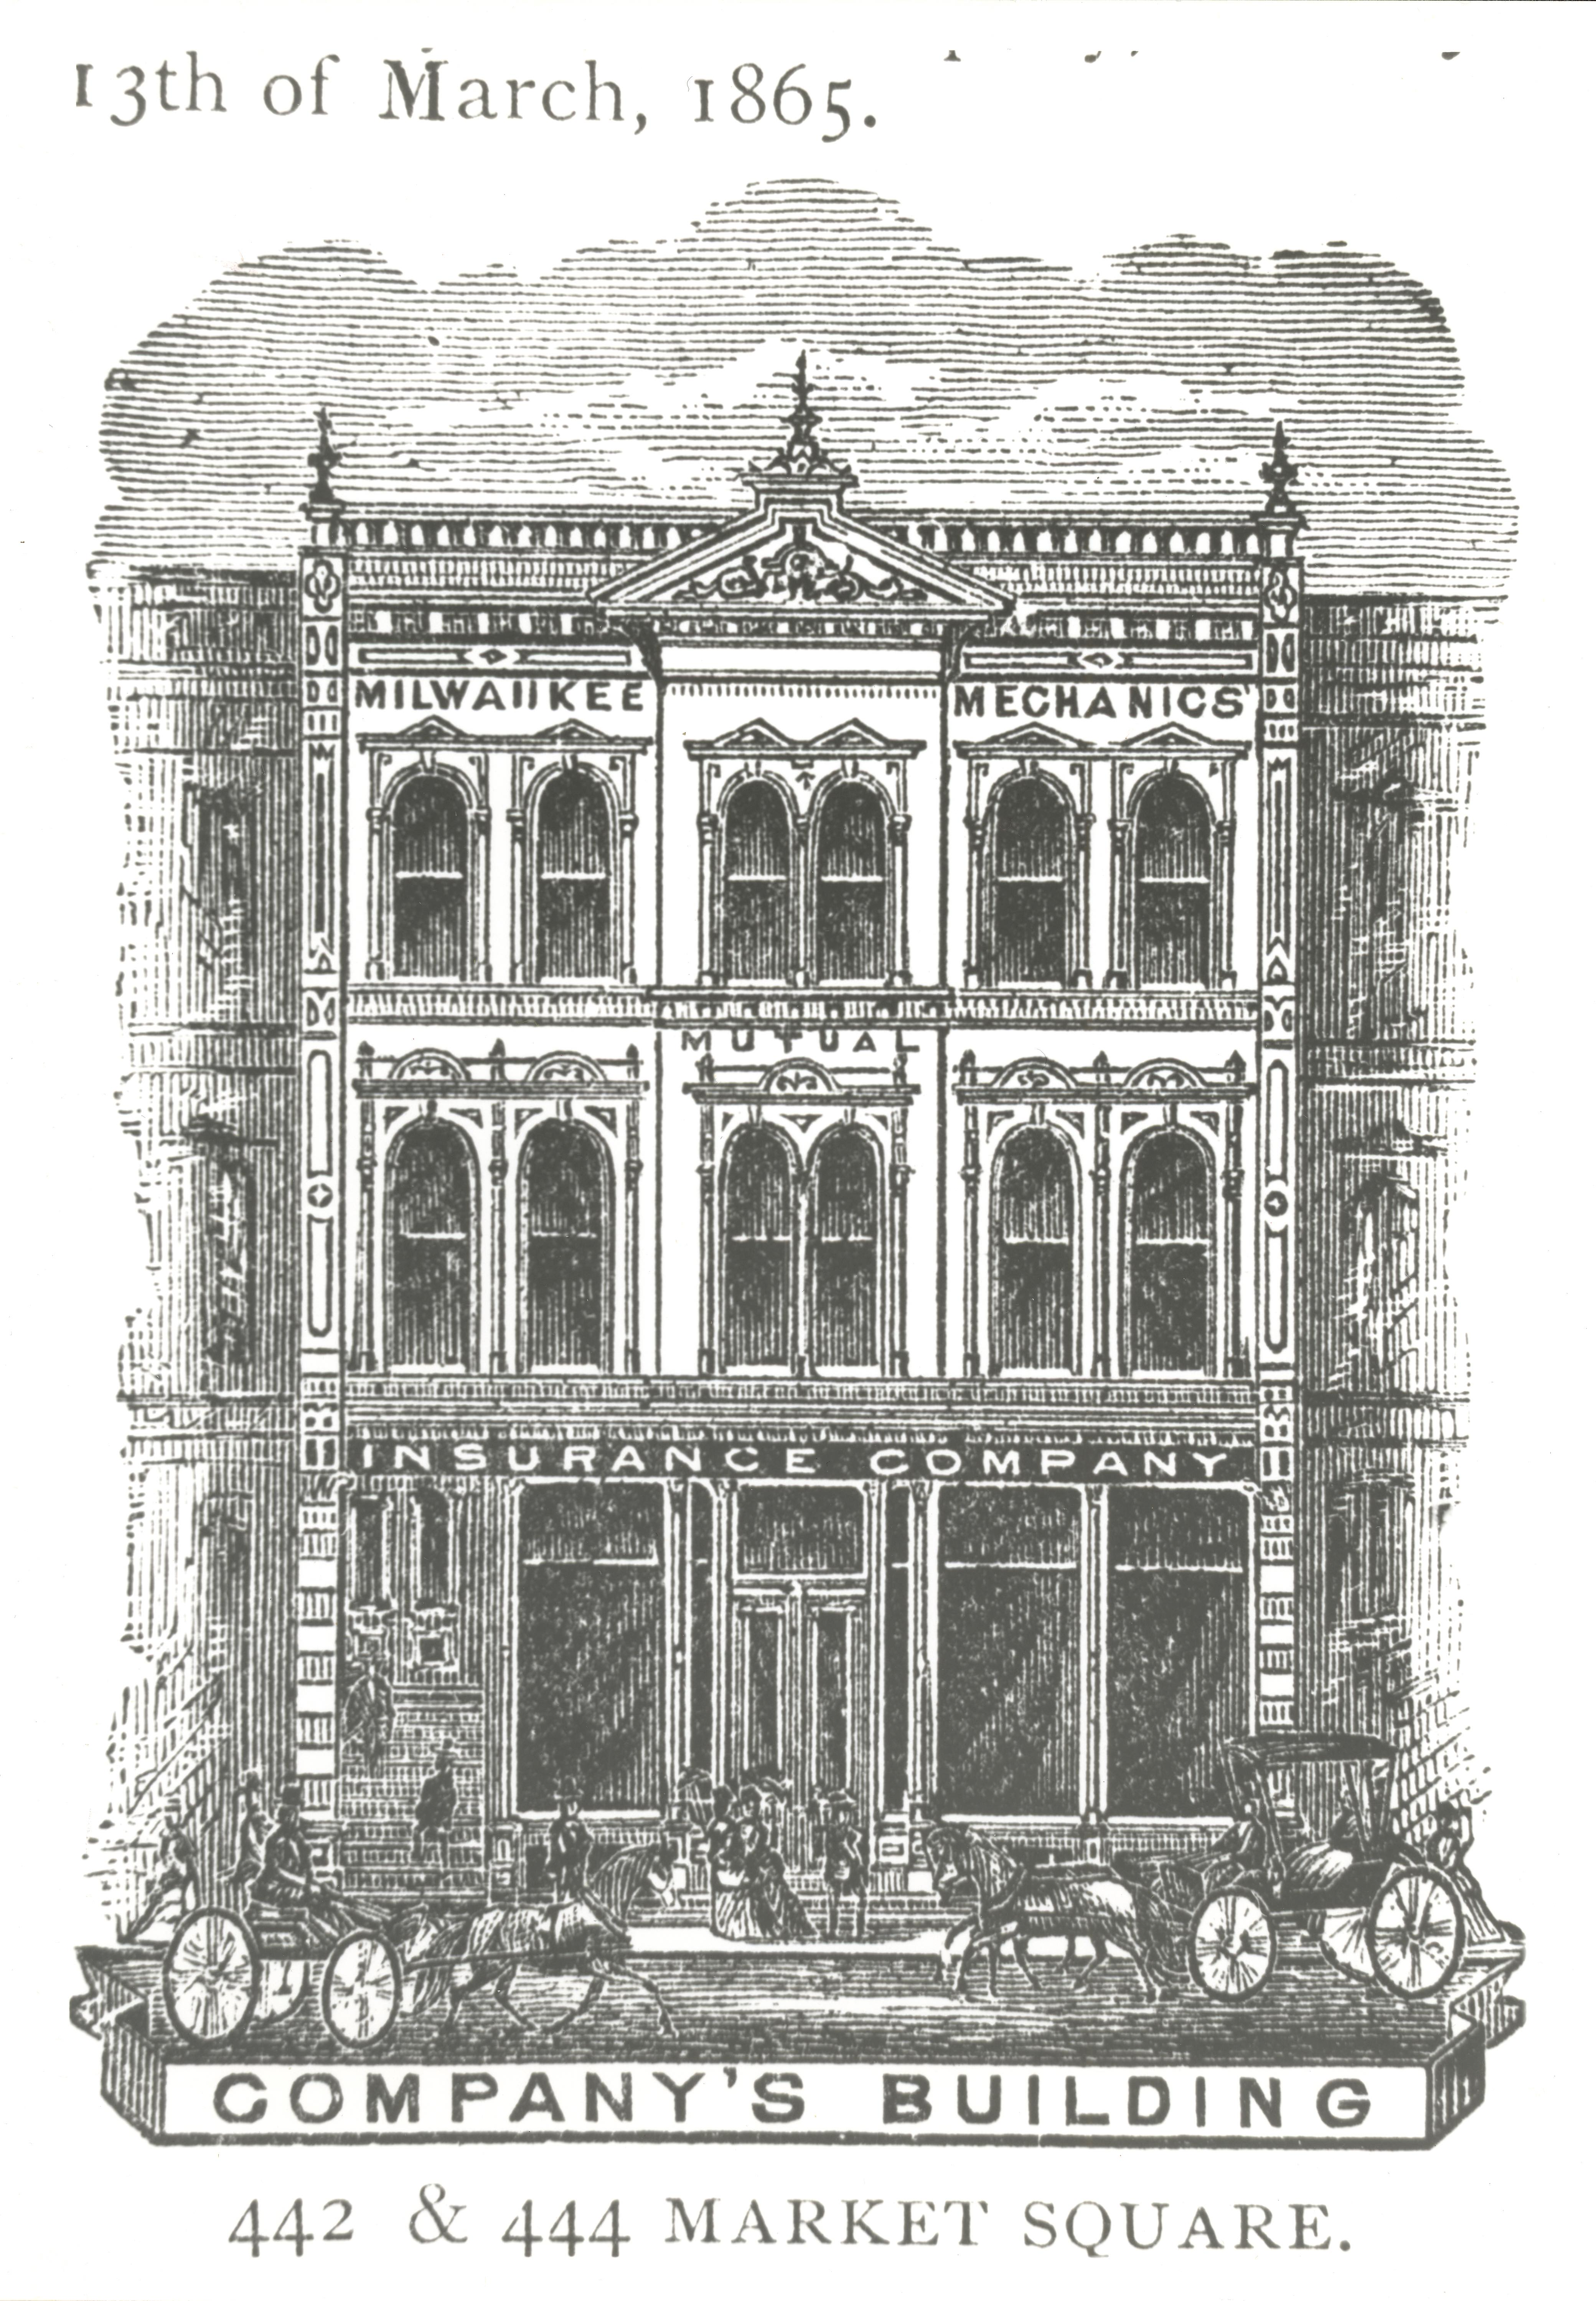 <table class=&quot;lightbox&quot;><tr><td colspan=2 class=&quot;lightbox-title&quot;>Milwaukee Mechanics Mutual Insurance Company</td></tr><tr><td colspan=2 class=&quot;lightbox-caption&quot;>Illustration of the Milwaukee Mechanics Mutual Insurance Company building once located on Water Street.</td></tr><tr><td colspan=2 class=&quot;lightbox-spacer&quot;></td></tr><tr class=&quot;lightbox-detail&quot;><td class=&quot;cell-title&quot;>Source: </td><td class=&quot;cell-value&quot;>From the Historic Photo Collection of the Milwaukee Public Library. Reprinted with permission. <br /><a href=&quot;http://content.mpl.org/cdm/singleitem/collection/HstoricPho/id/2623/rec/63&quot; target=&quot;_blank&quot;>Milwaukee Public Library</a></td></tr><tr class=&quot;filler-row&quot;><td colspan=2>&nbsp;</td></tr></table>